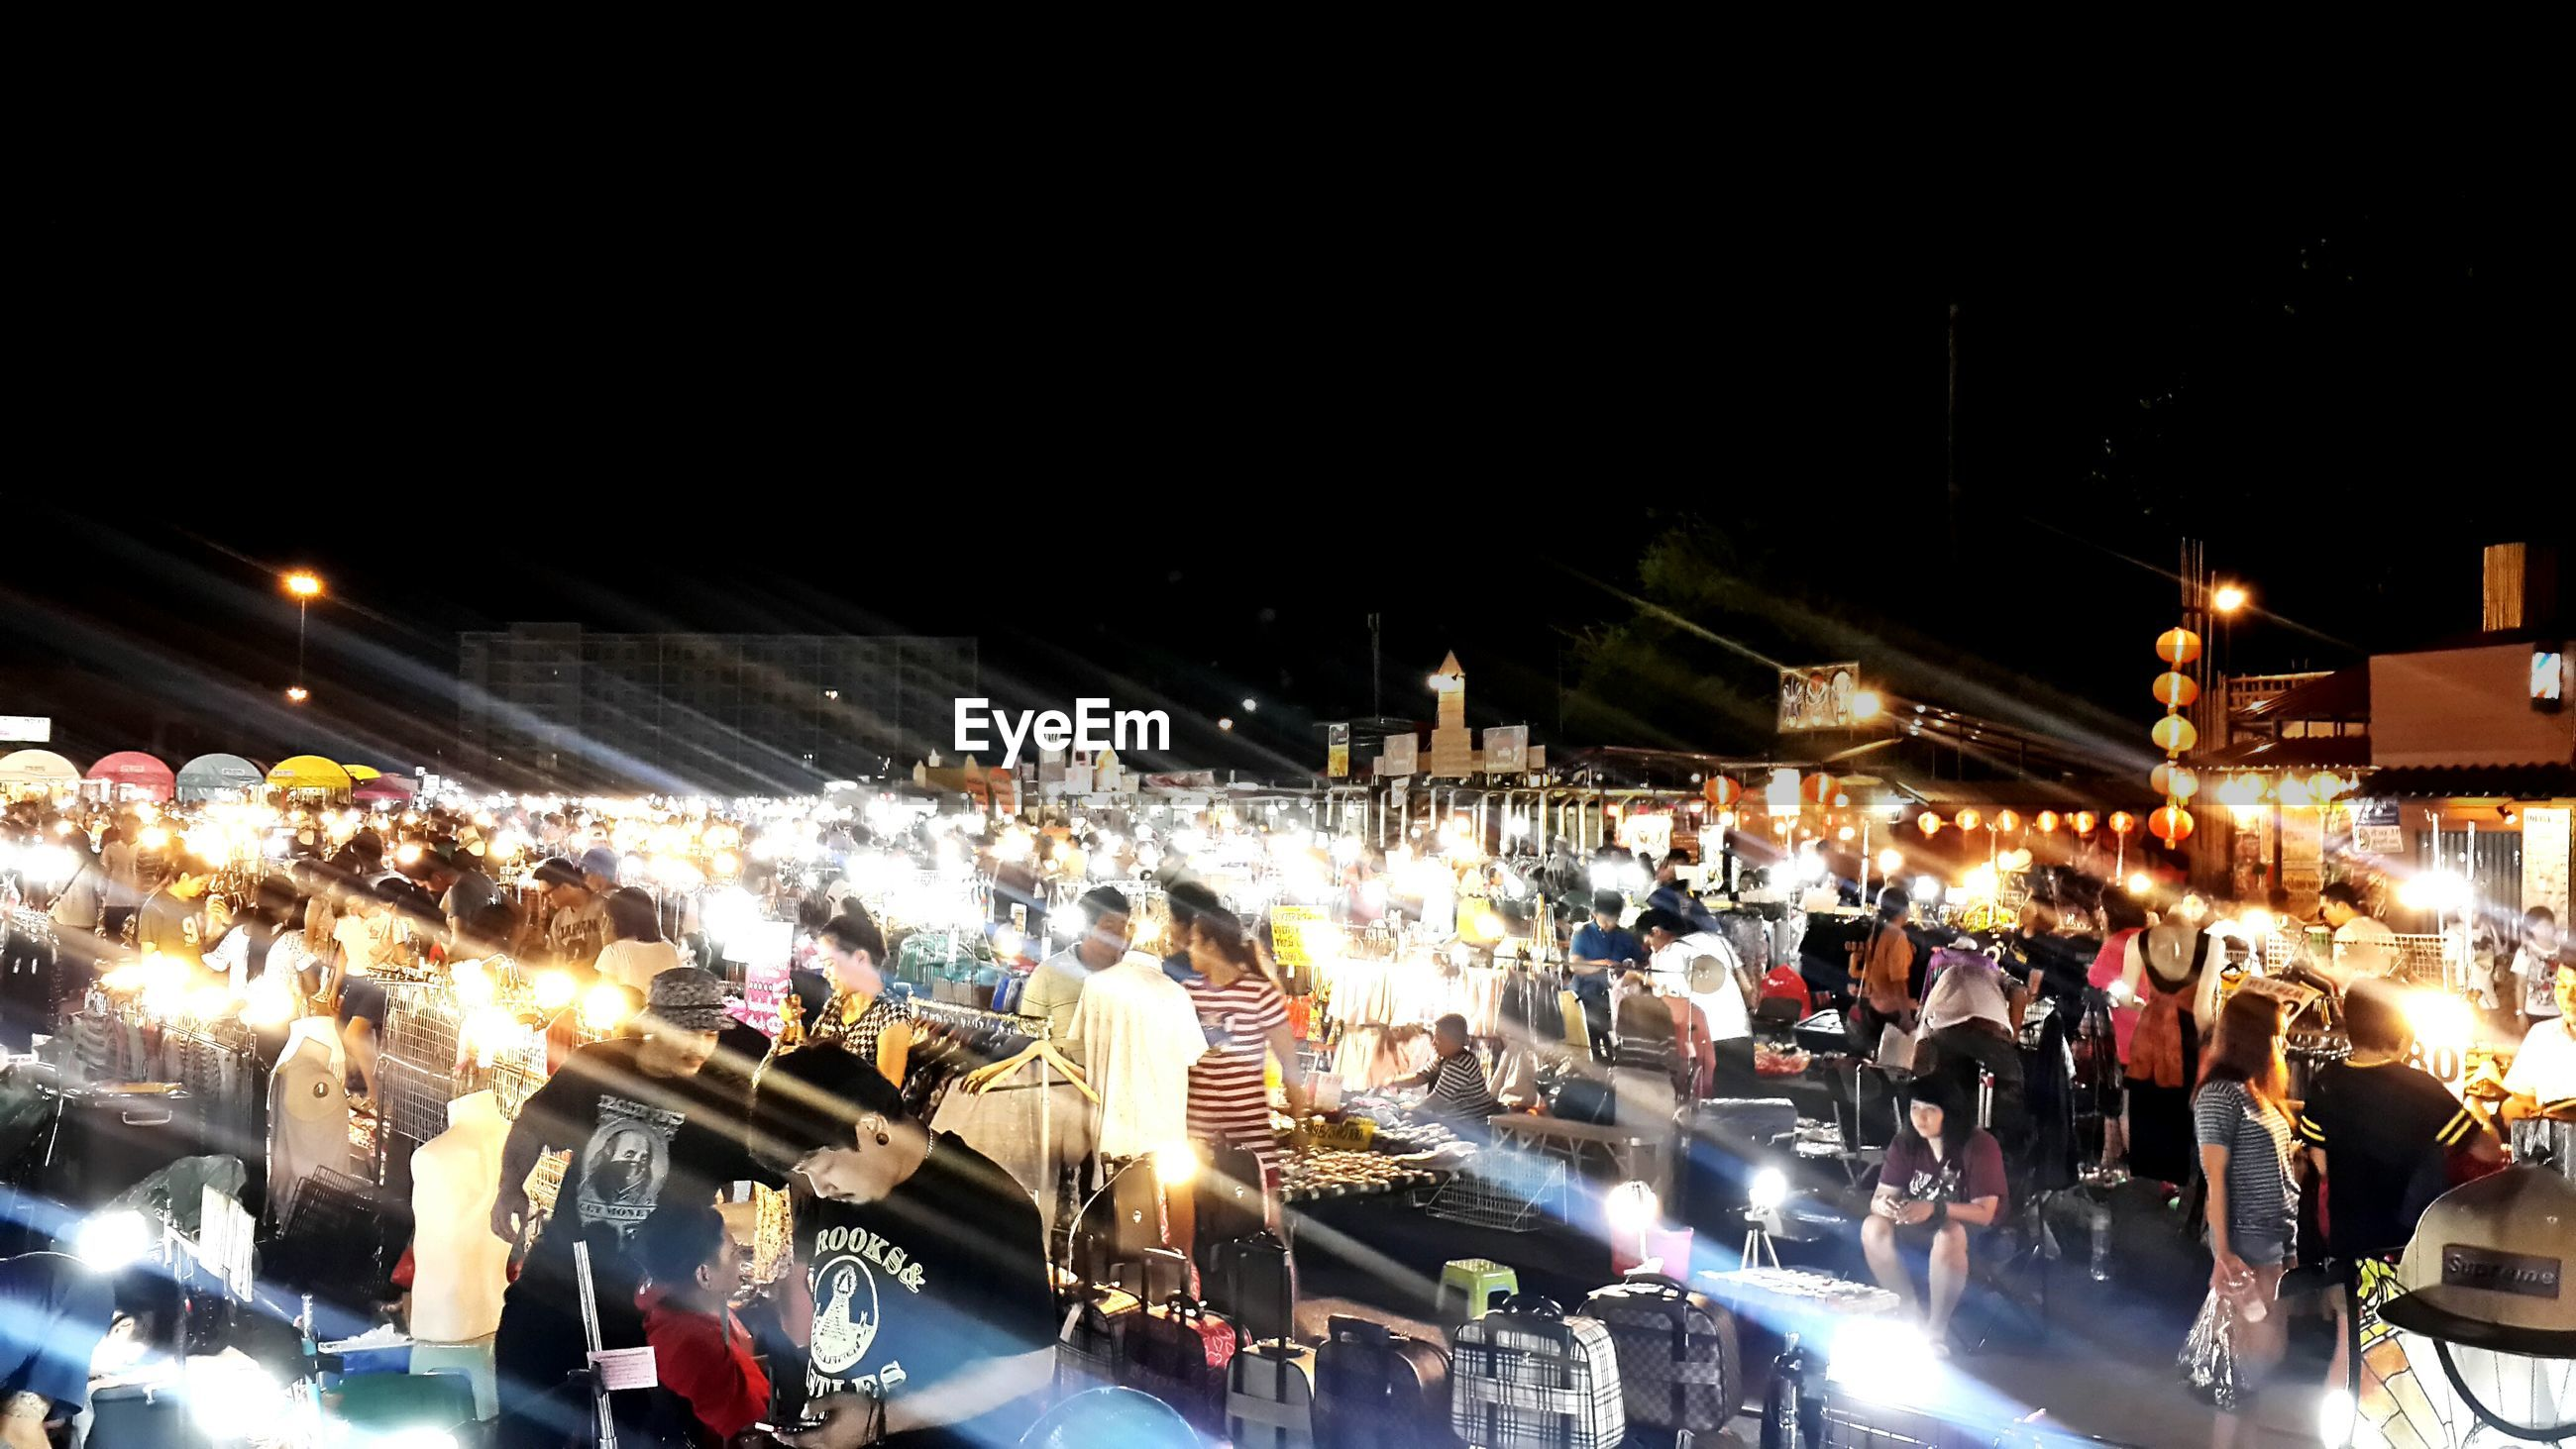 People in illuminated market against sky at night